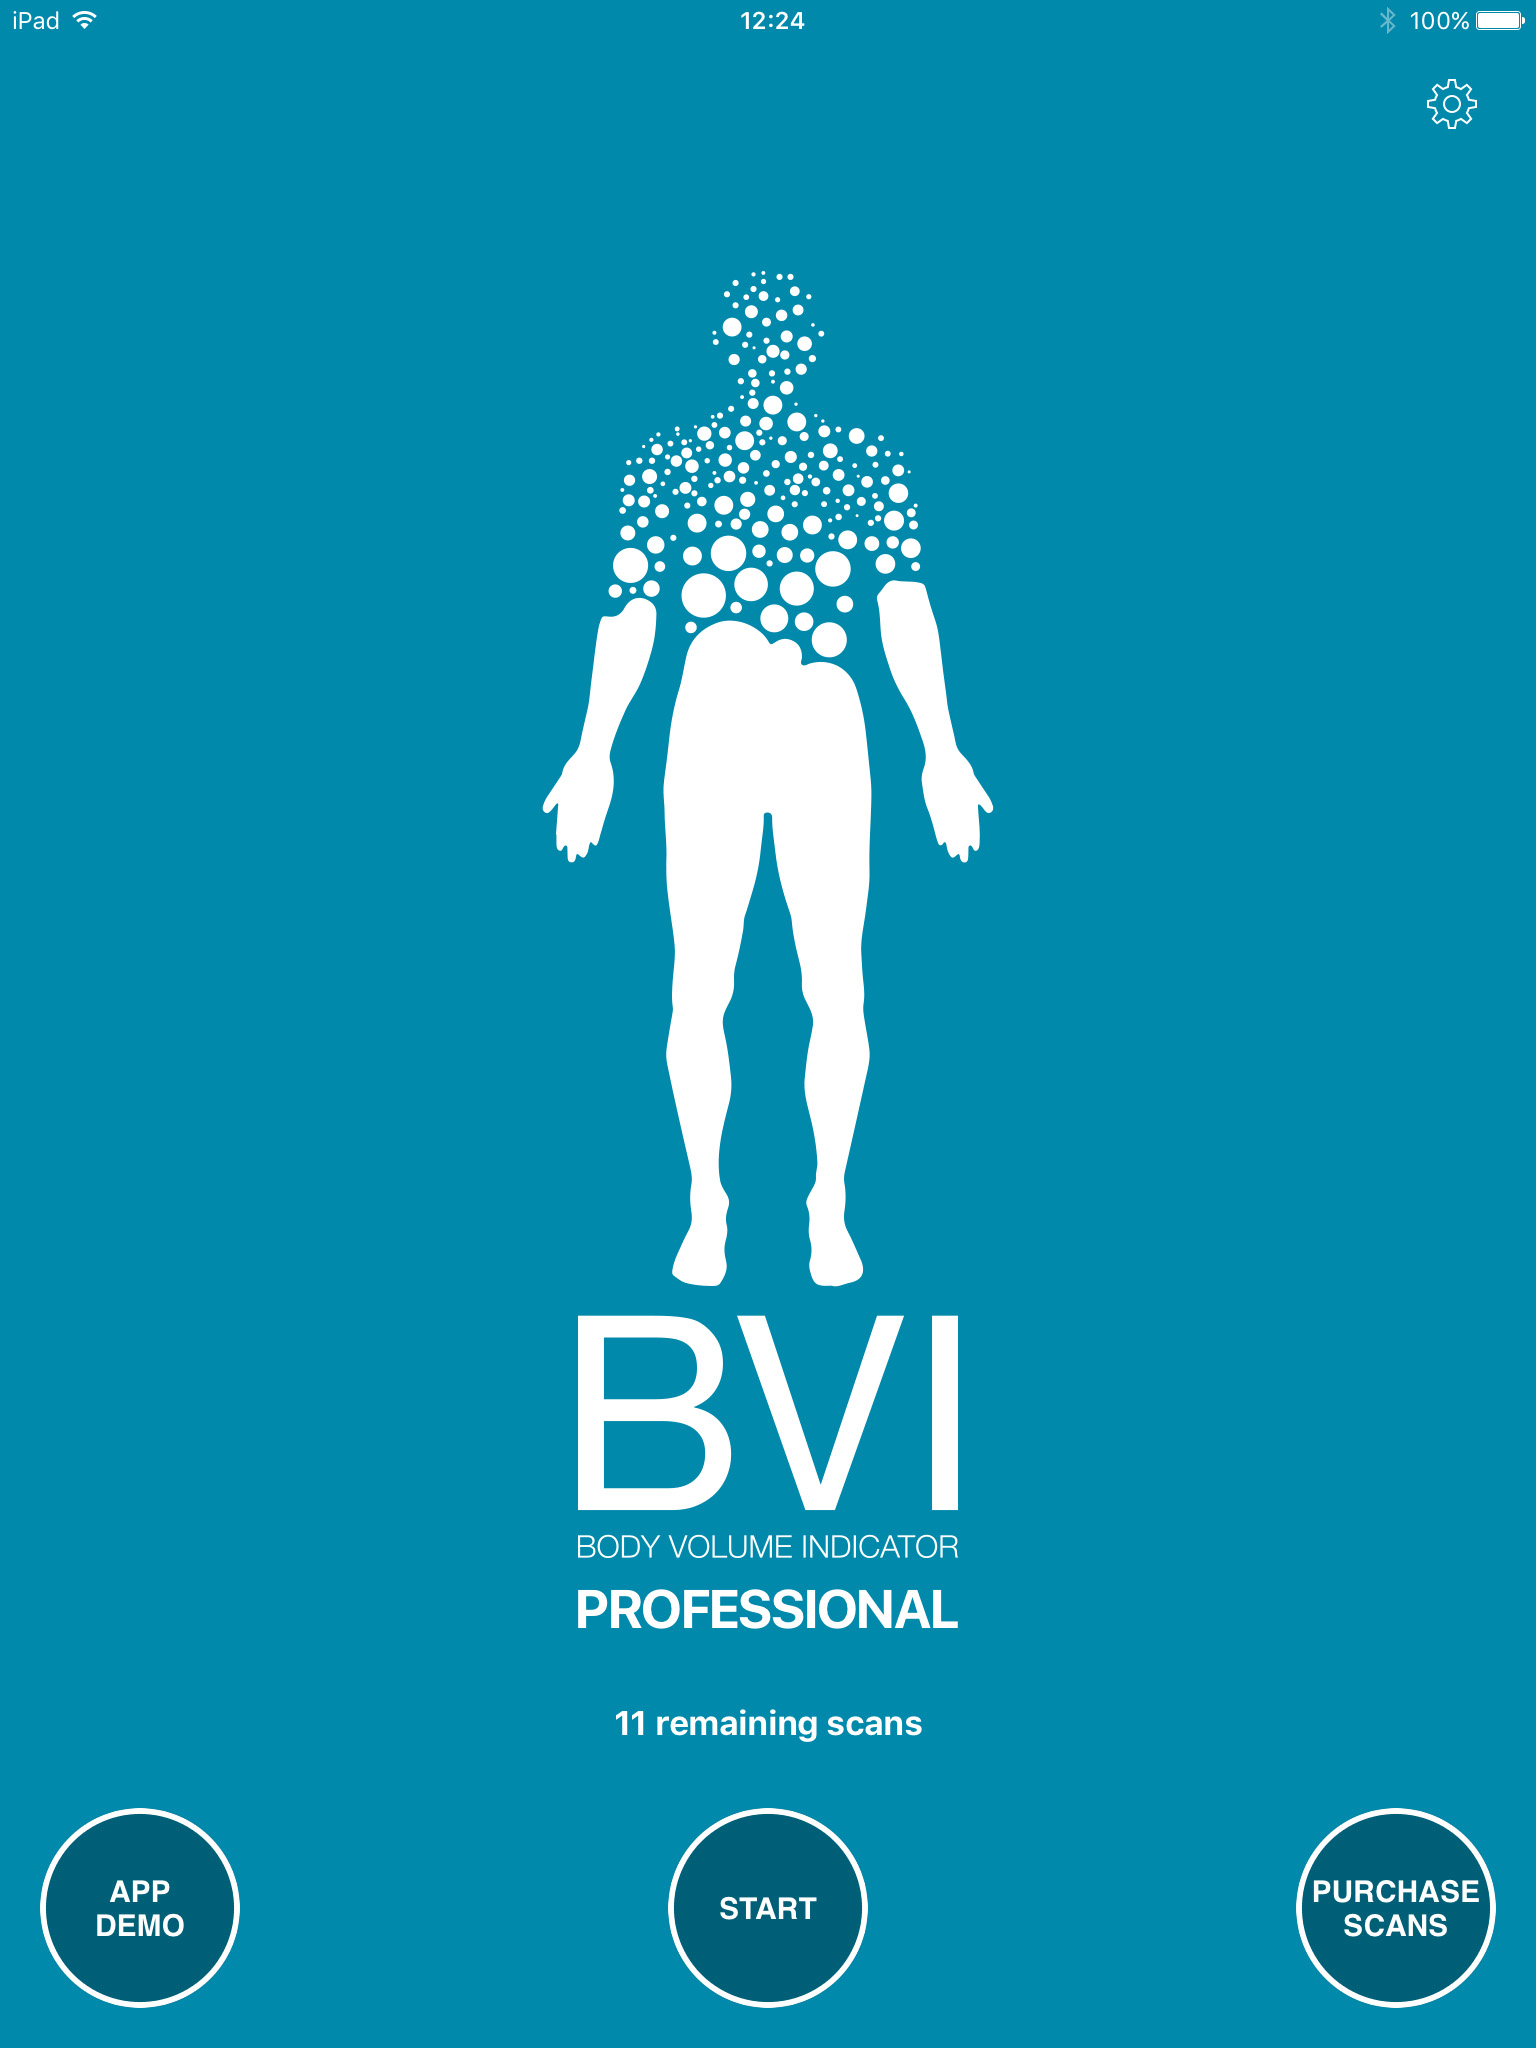 BVI Pro App Welcome Screen